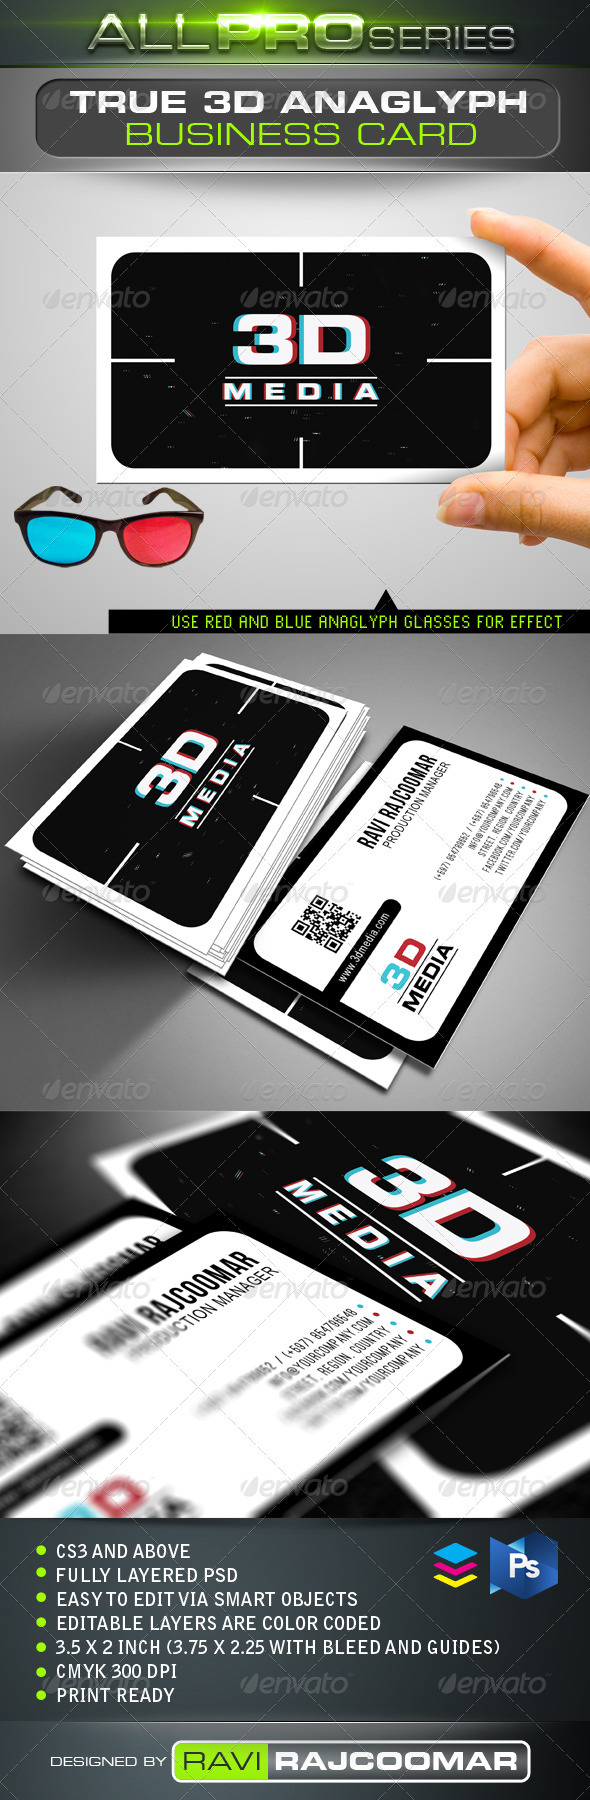 True 3D Anaglyph Business Card - Business Cards Print Templates